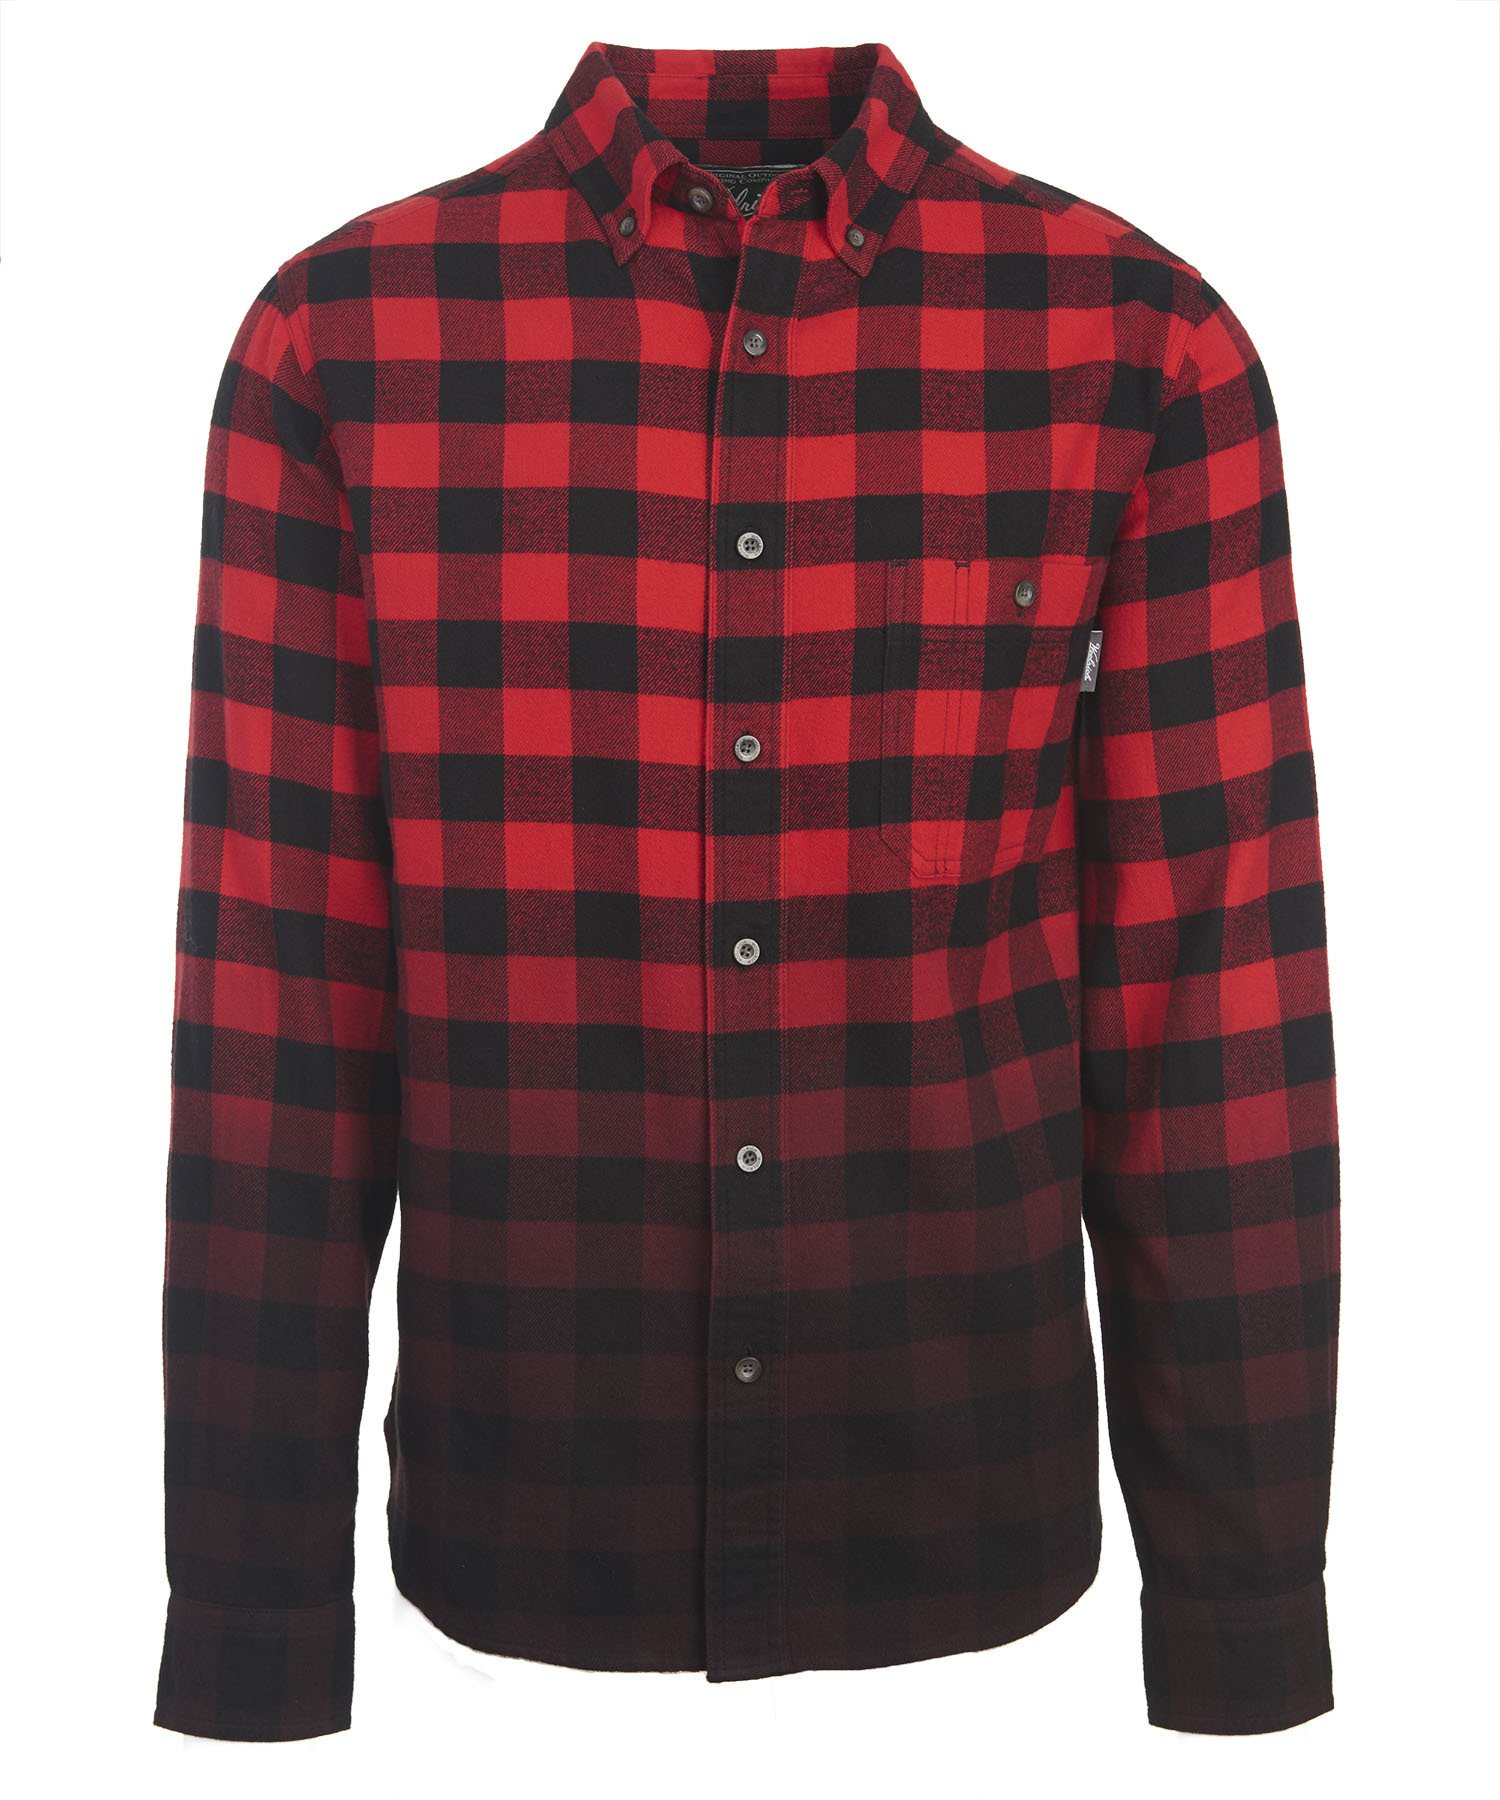 the best ways to wear mens flannel shirts